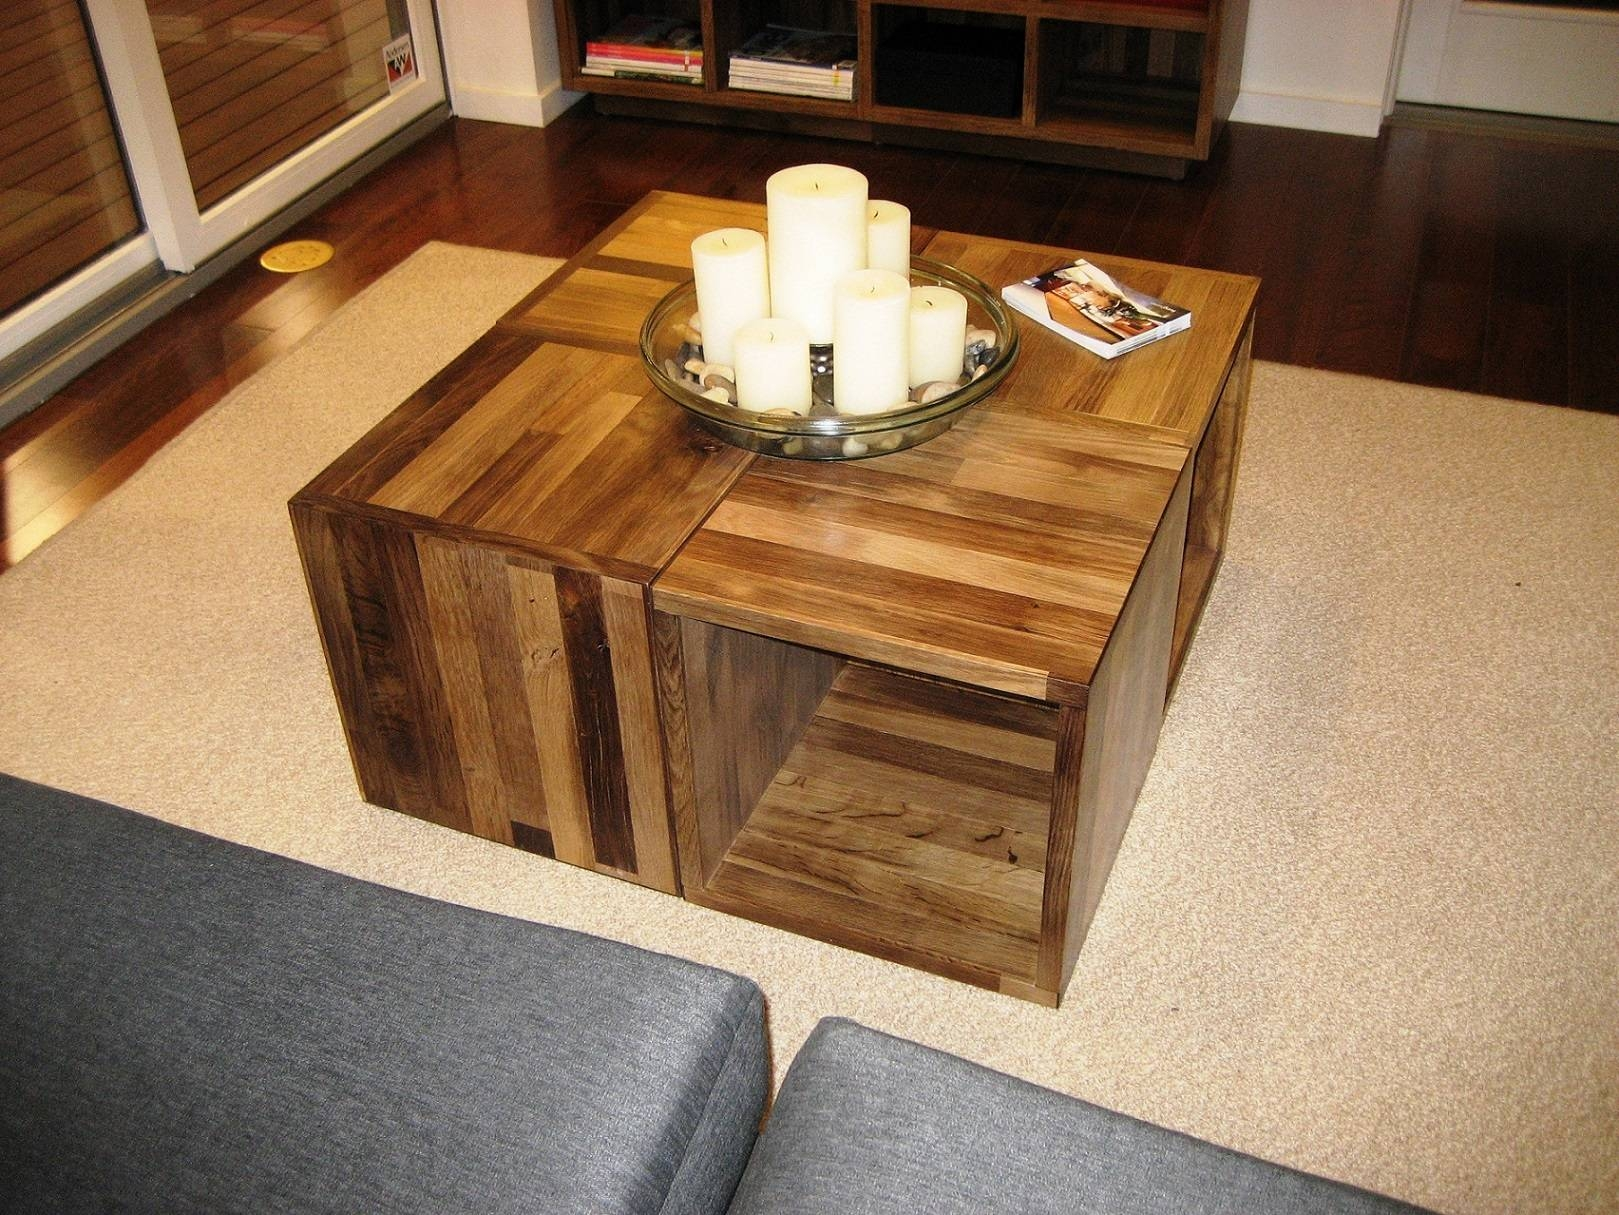 Cool Cool Wood Coffee Tables Unique Wooden Popular On Square Table with Wooden Coffee Tables With Storage (Image 16 of 30)